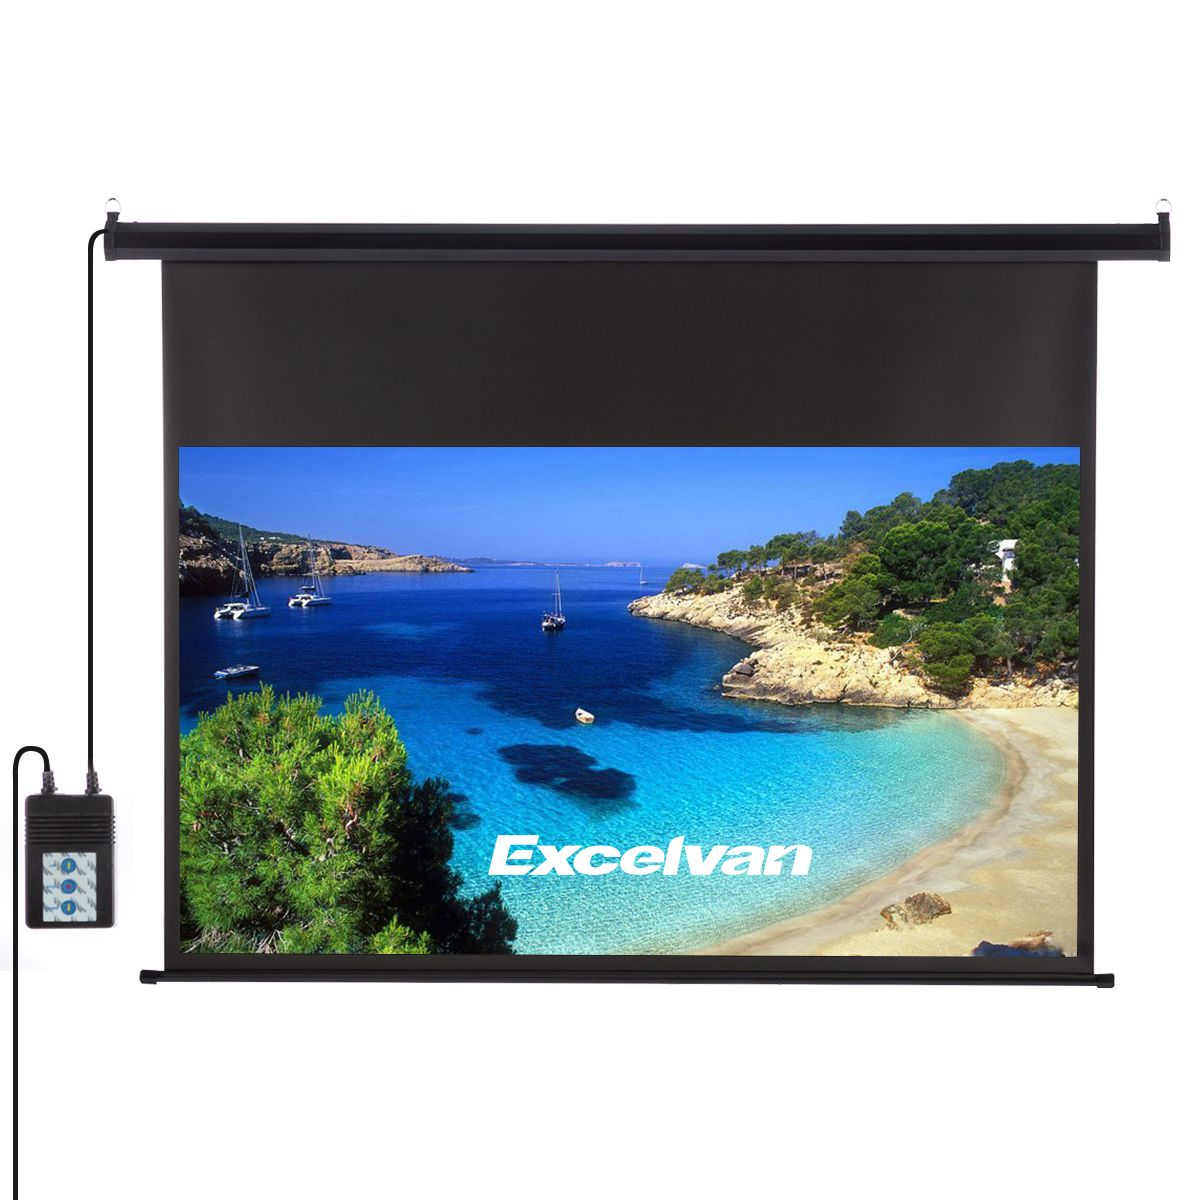 Excelvan 120 Inch 16 9 1 2 Gain Wall Ceiling Electric Motorized Hd Projector Screen With Remote Co Outdoor Projector Screens Outdoor Projector Projector Screen